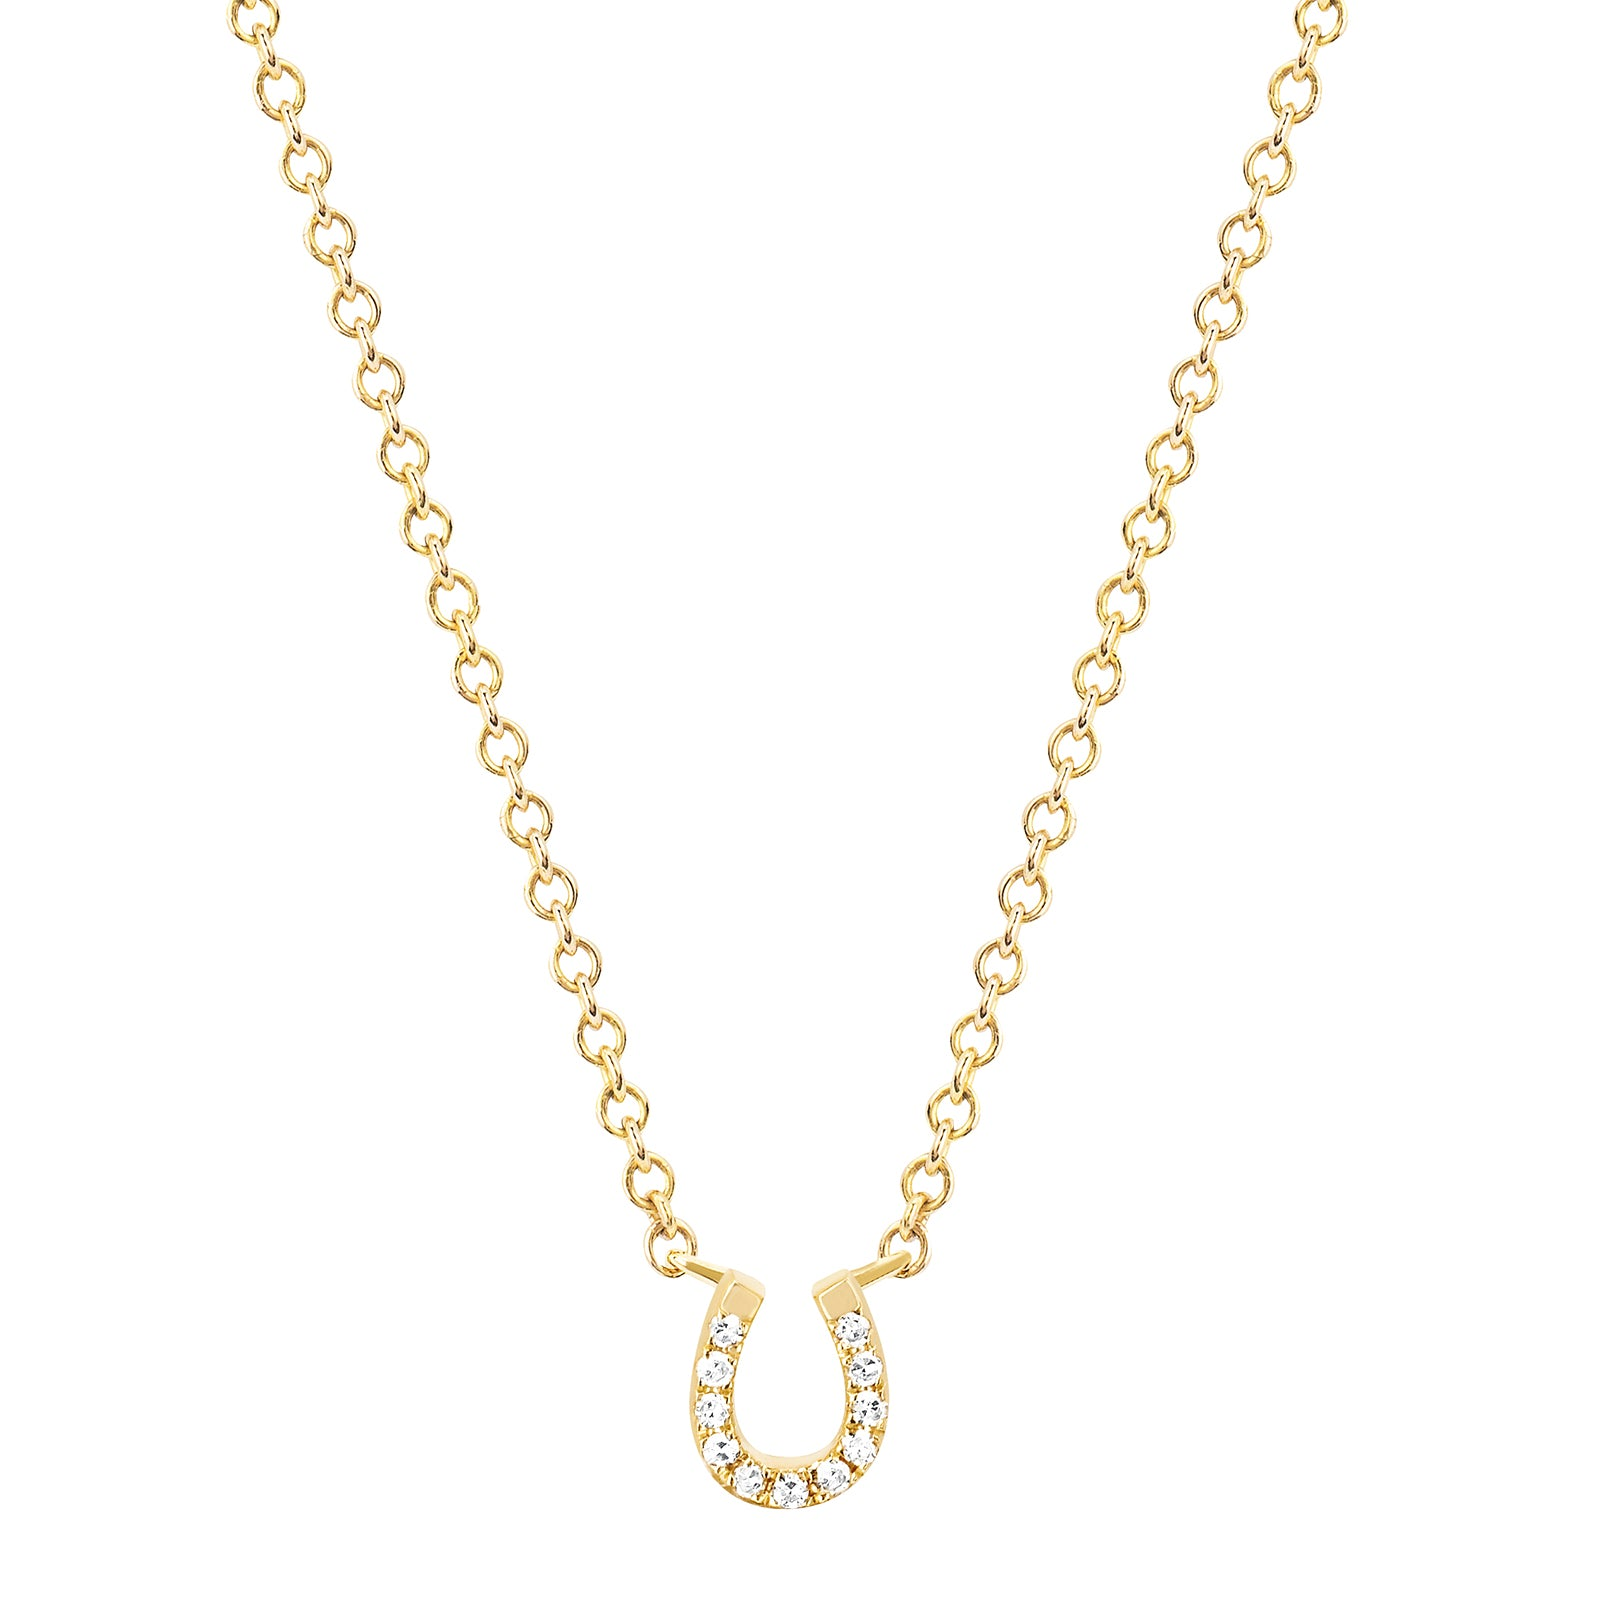 EF Collection Mini Horseshoe Choker - Yellow Gold - Necklaces - Broken English Jewelry